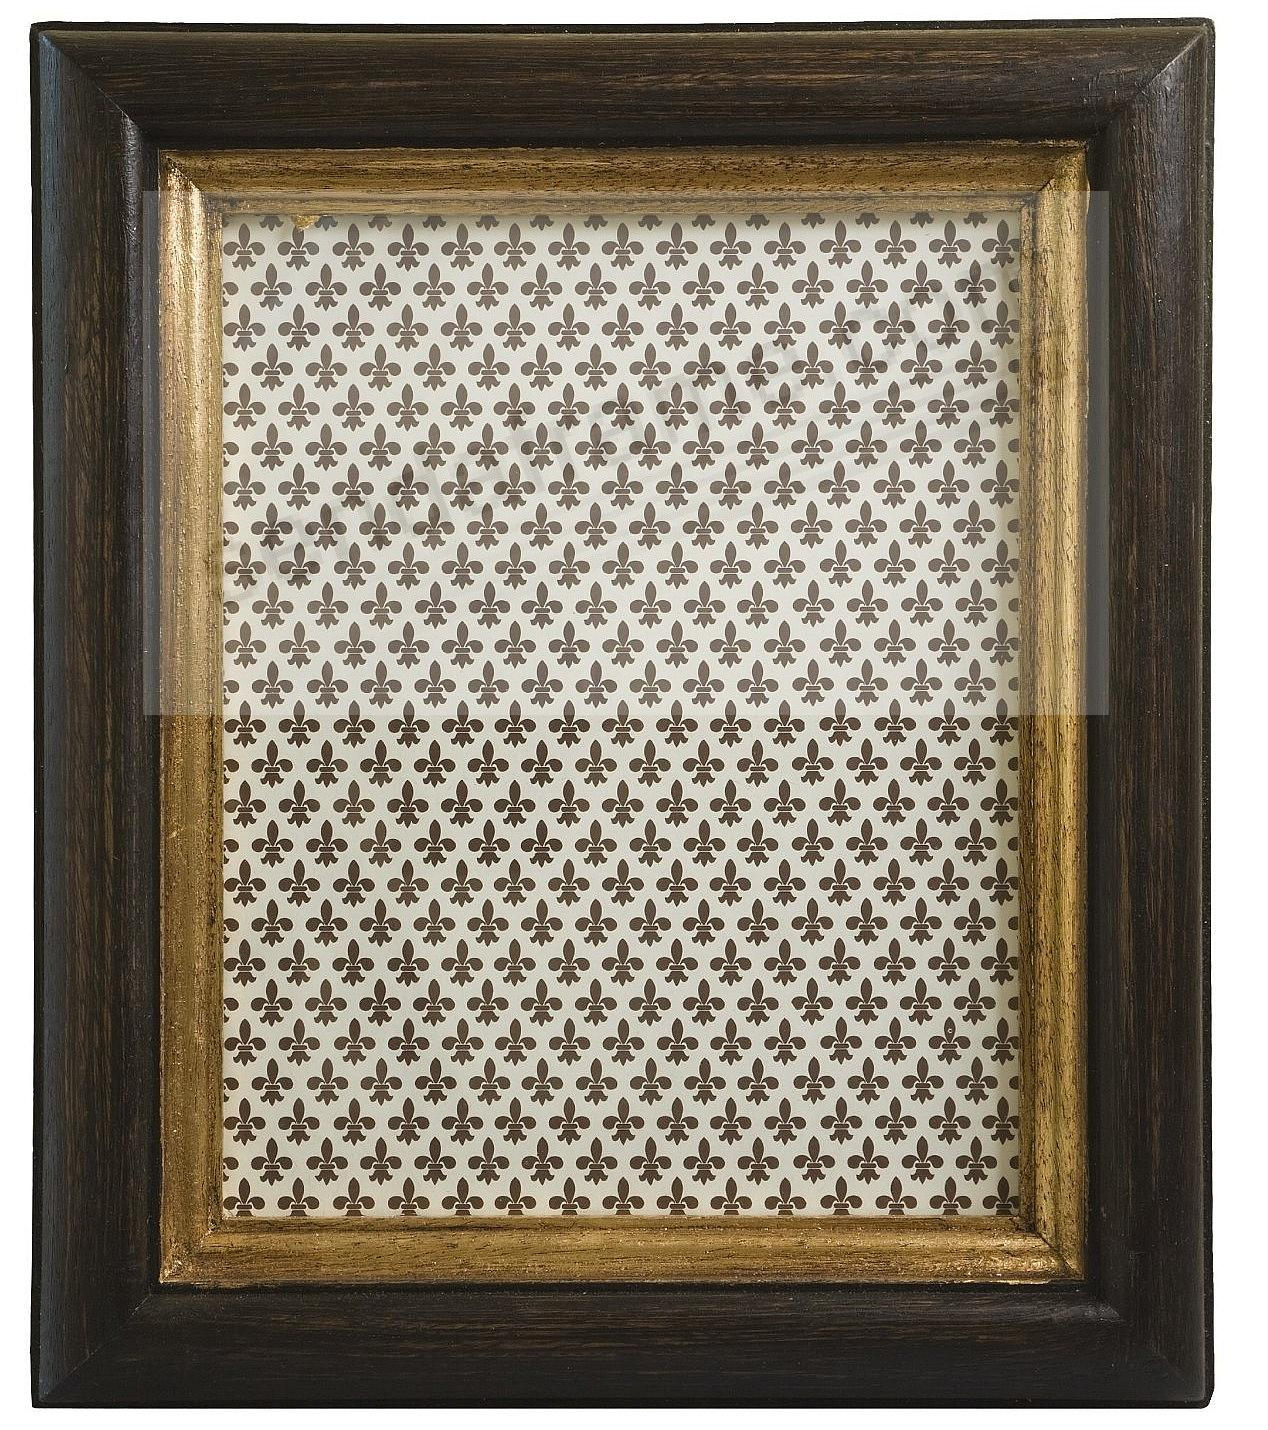 Antique dark brown and gold carved wood 5x7 frame by eccolo antique dark brown and gold carved wood 5x7 frame by eccolo jeuxipadfo Image collections